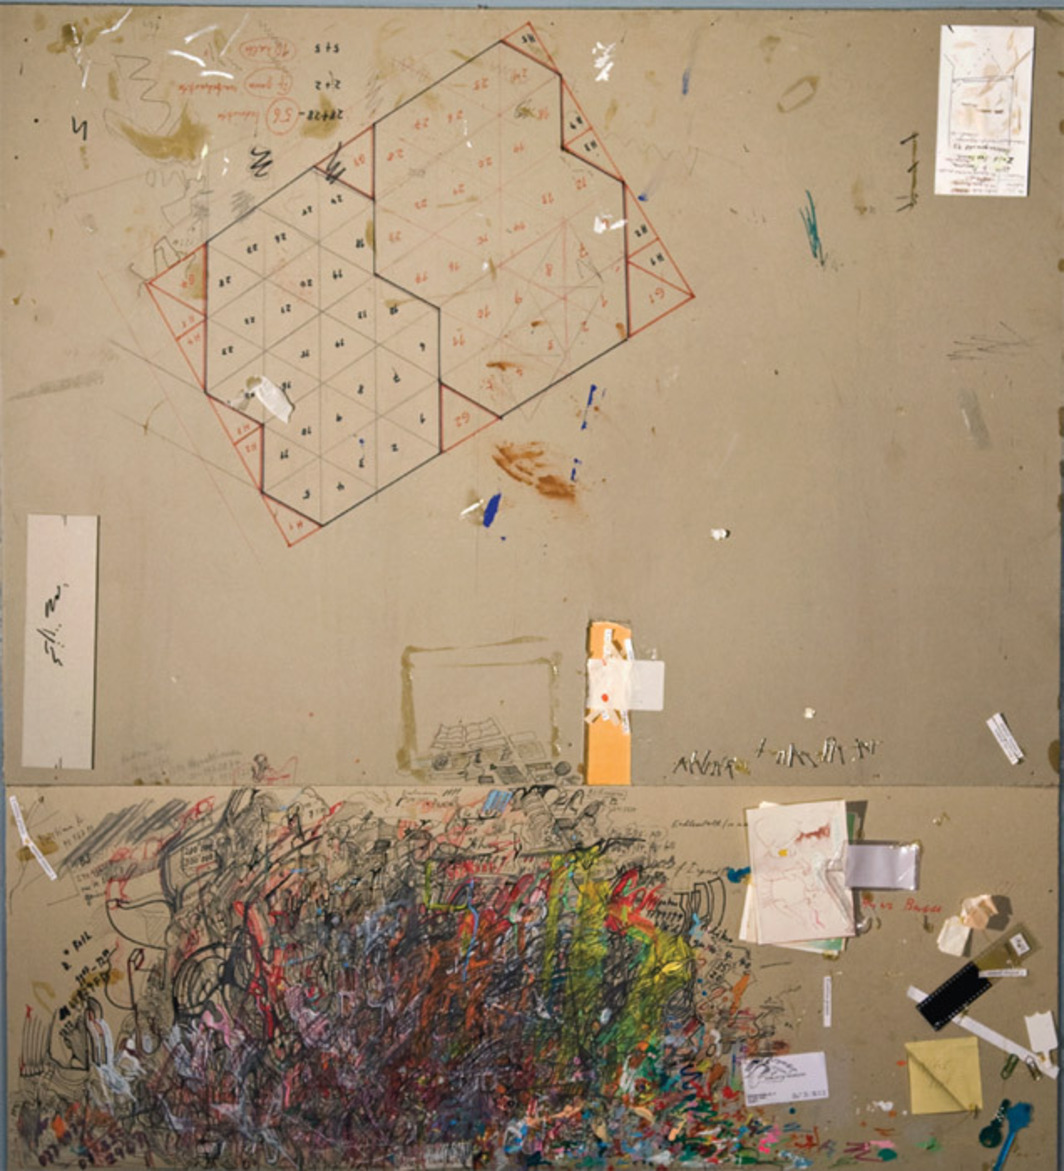 "Dieter Roth and Björn Roth, Matte vom Bürotisch, Hegenheimerstrasse, Basel, 1996–97, acrylic, oil, graphite, ink, and collage on paper mounted on wood, 50 3/4 x 45 5/8 x 1 5/8""."